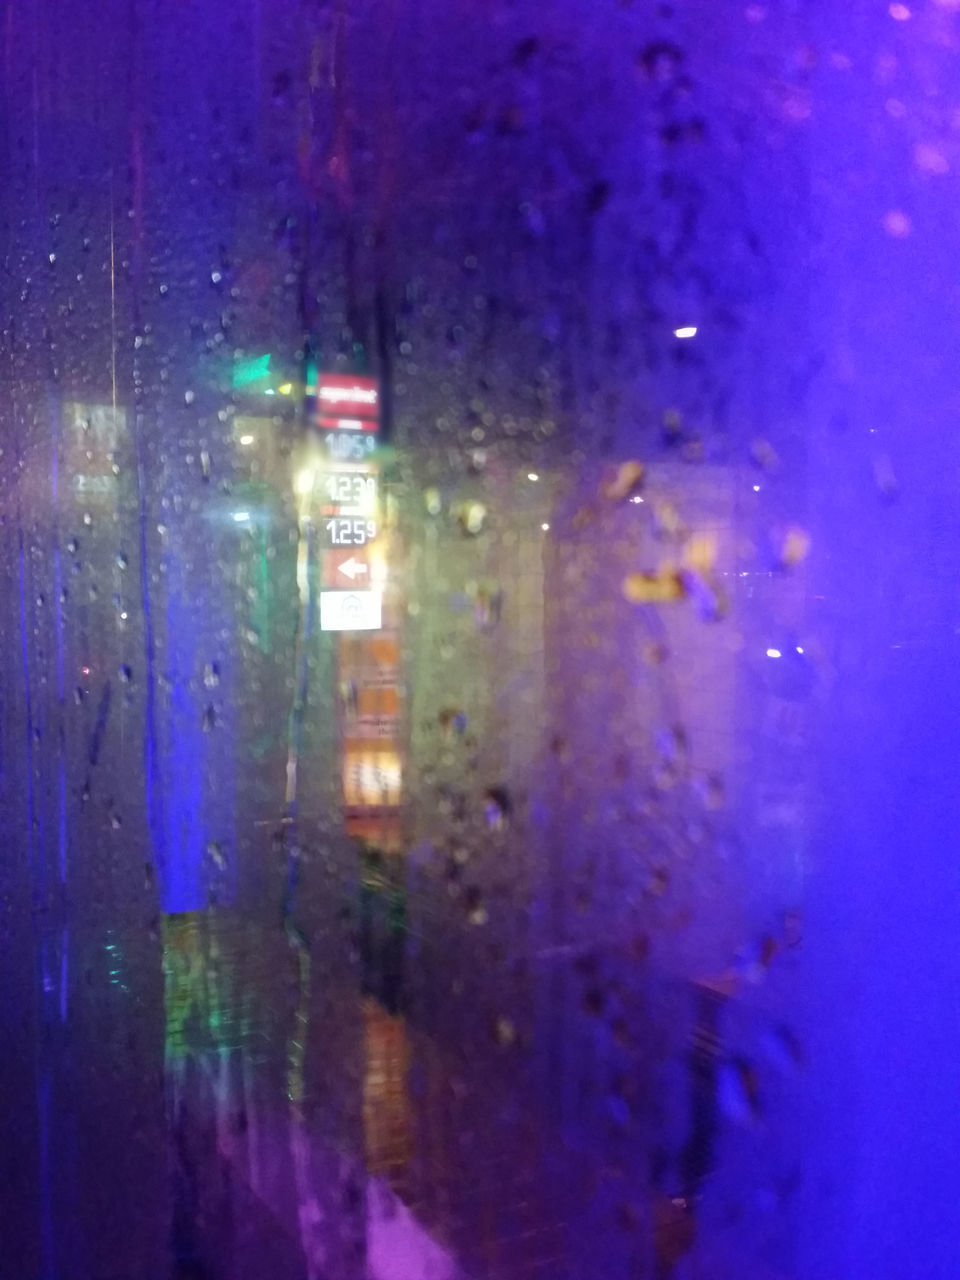 illuminated, window, no people, night, wet, built structure, full frame, indoors, water, blue, architecture, building exterior, close-up